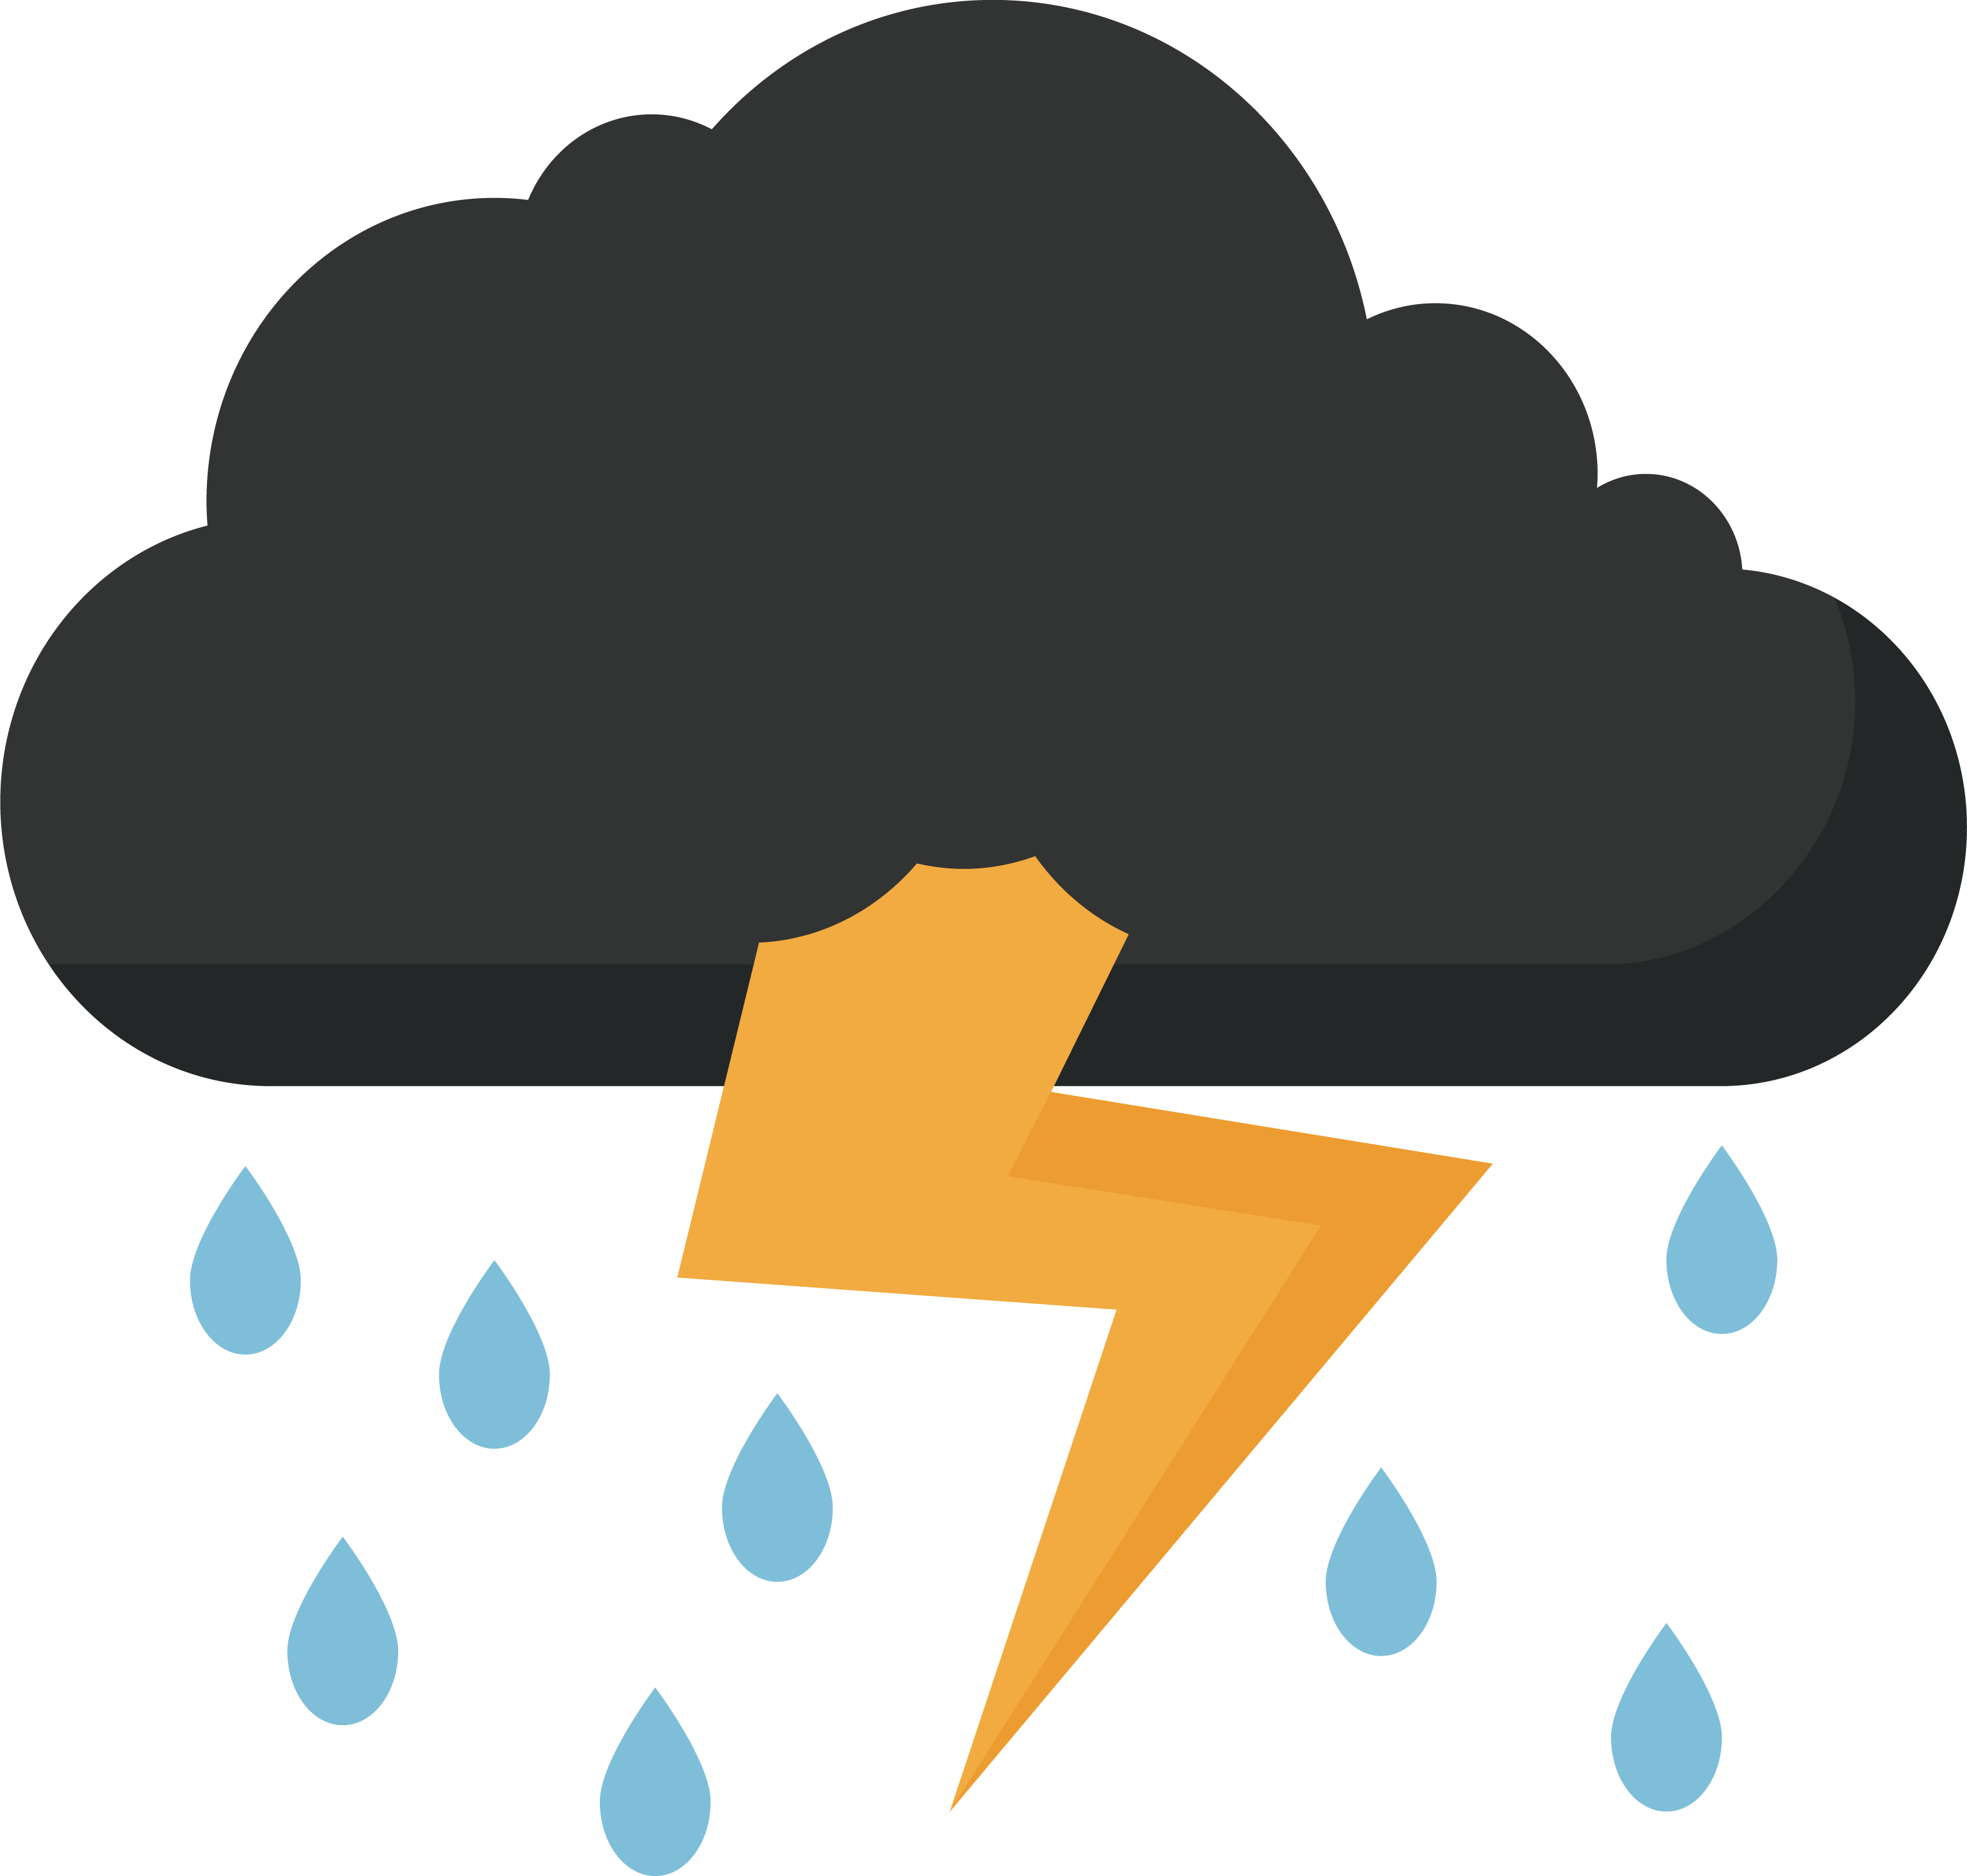 Thunder and at getdrawings. Cloudy clipart lightning cloud